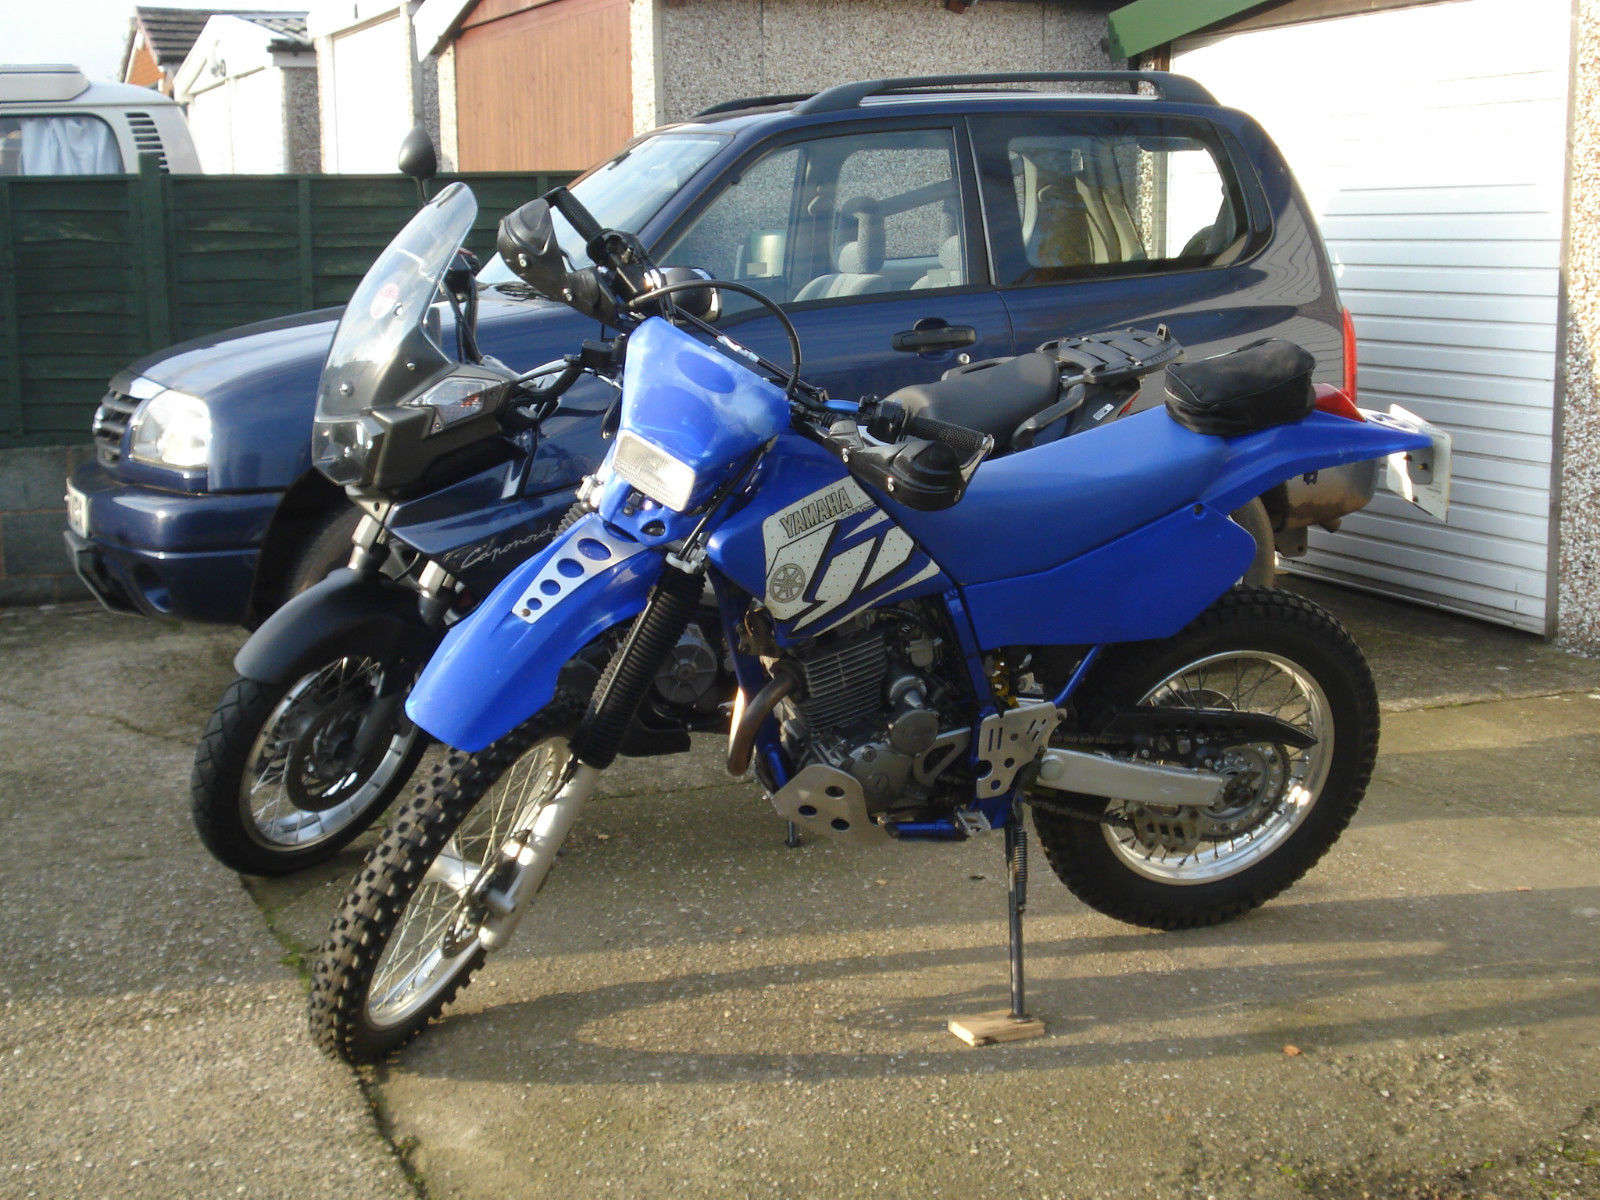 Used yamaha ttr250 motorcycles for sale used yamaha html for Yamaha ttr 150 for sale